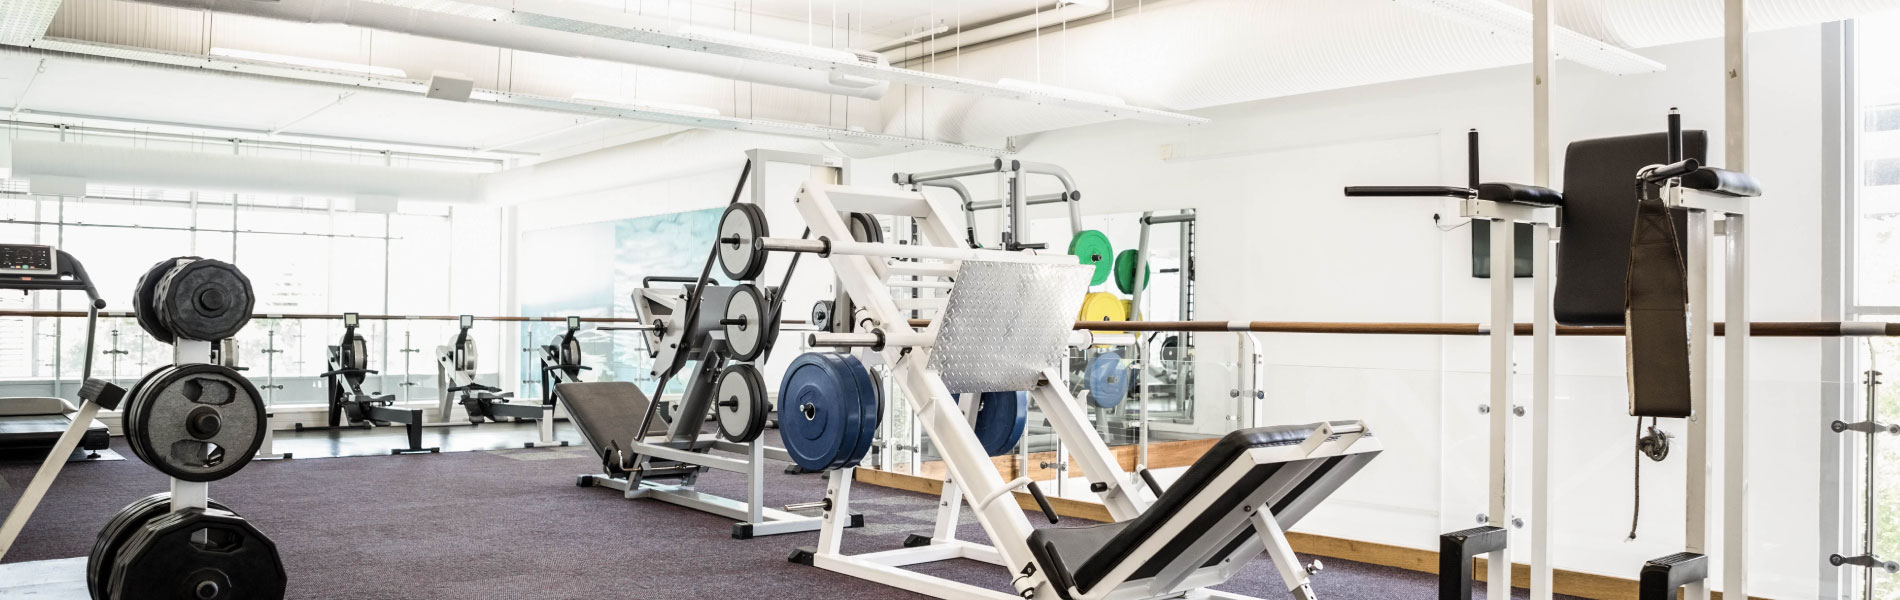 The All-in-One Facility: How Multipurpose Recreation Facilities Succeed